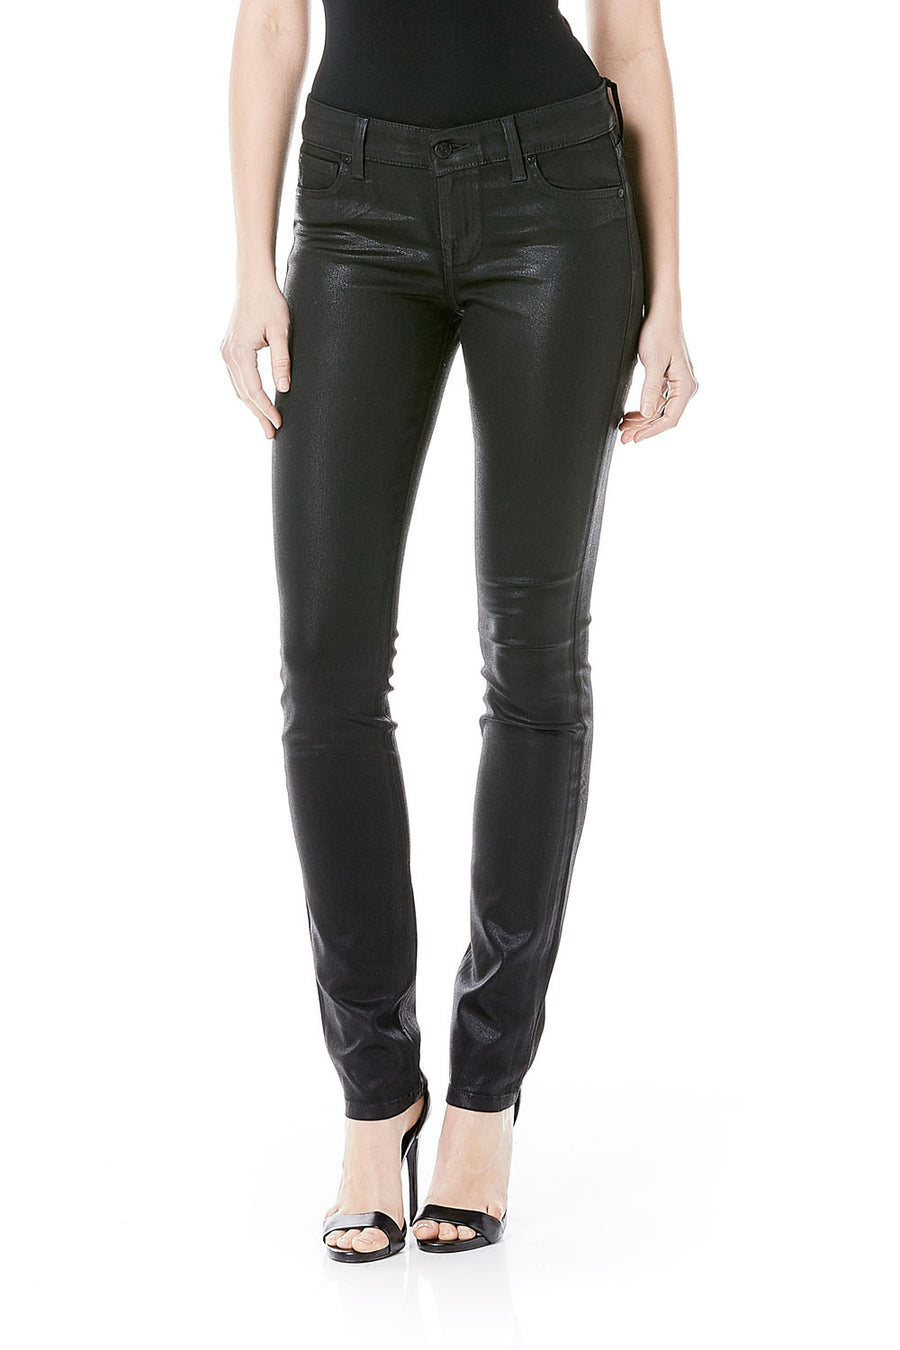 Lily Skinny Straight - Black Leather Coating - level99jeans